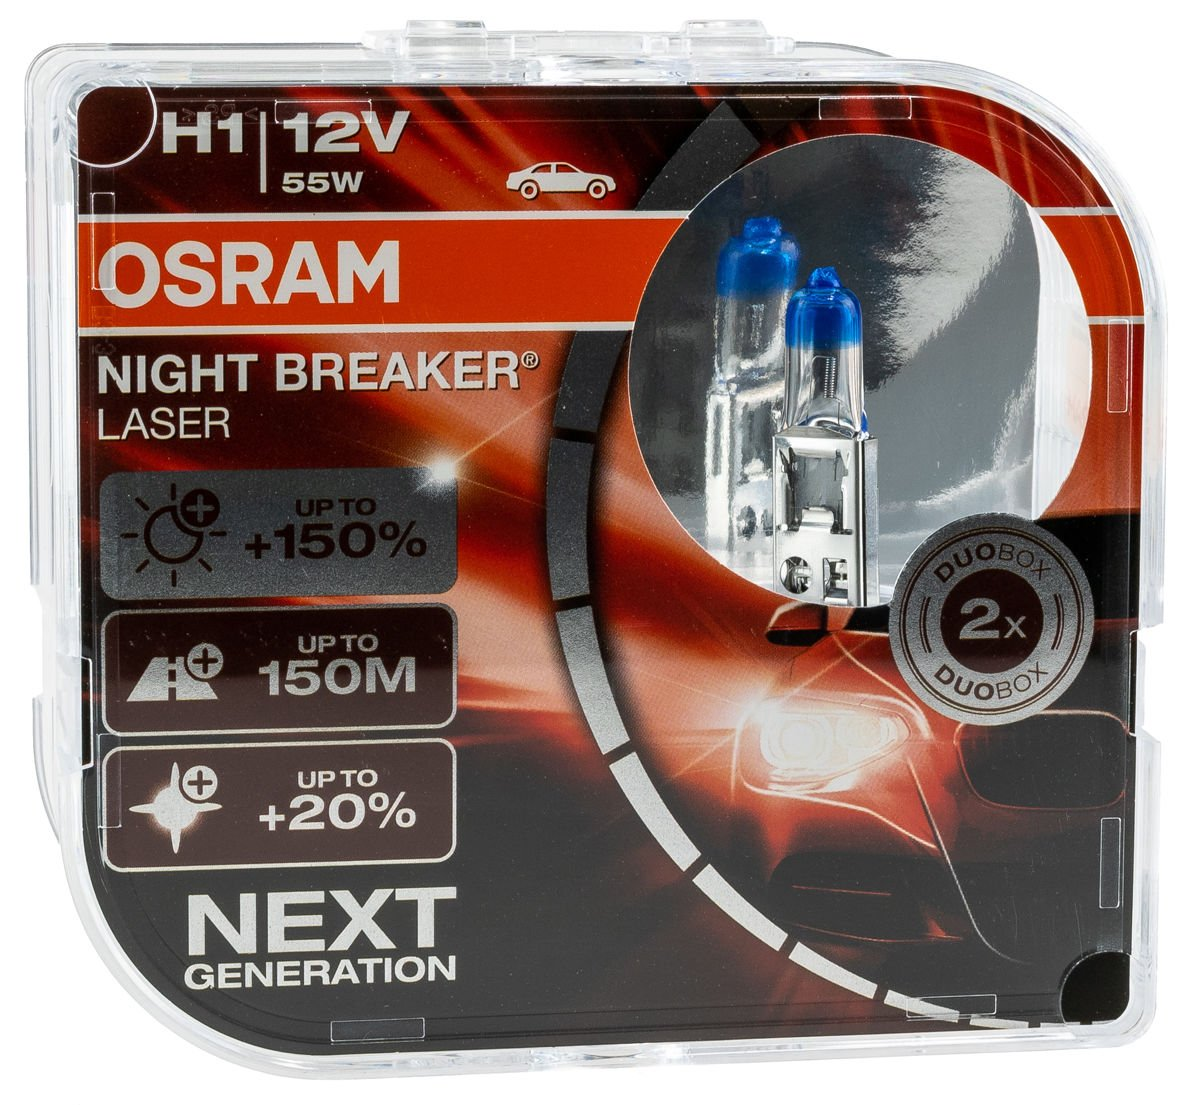 Osram Night Breaker Laser H1